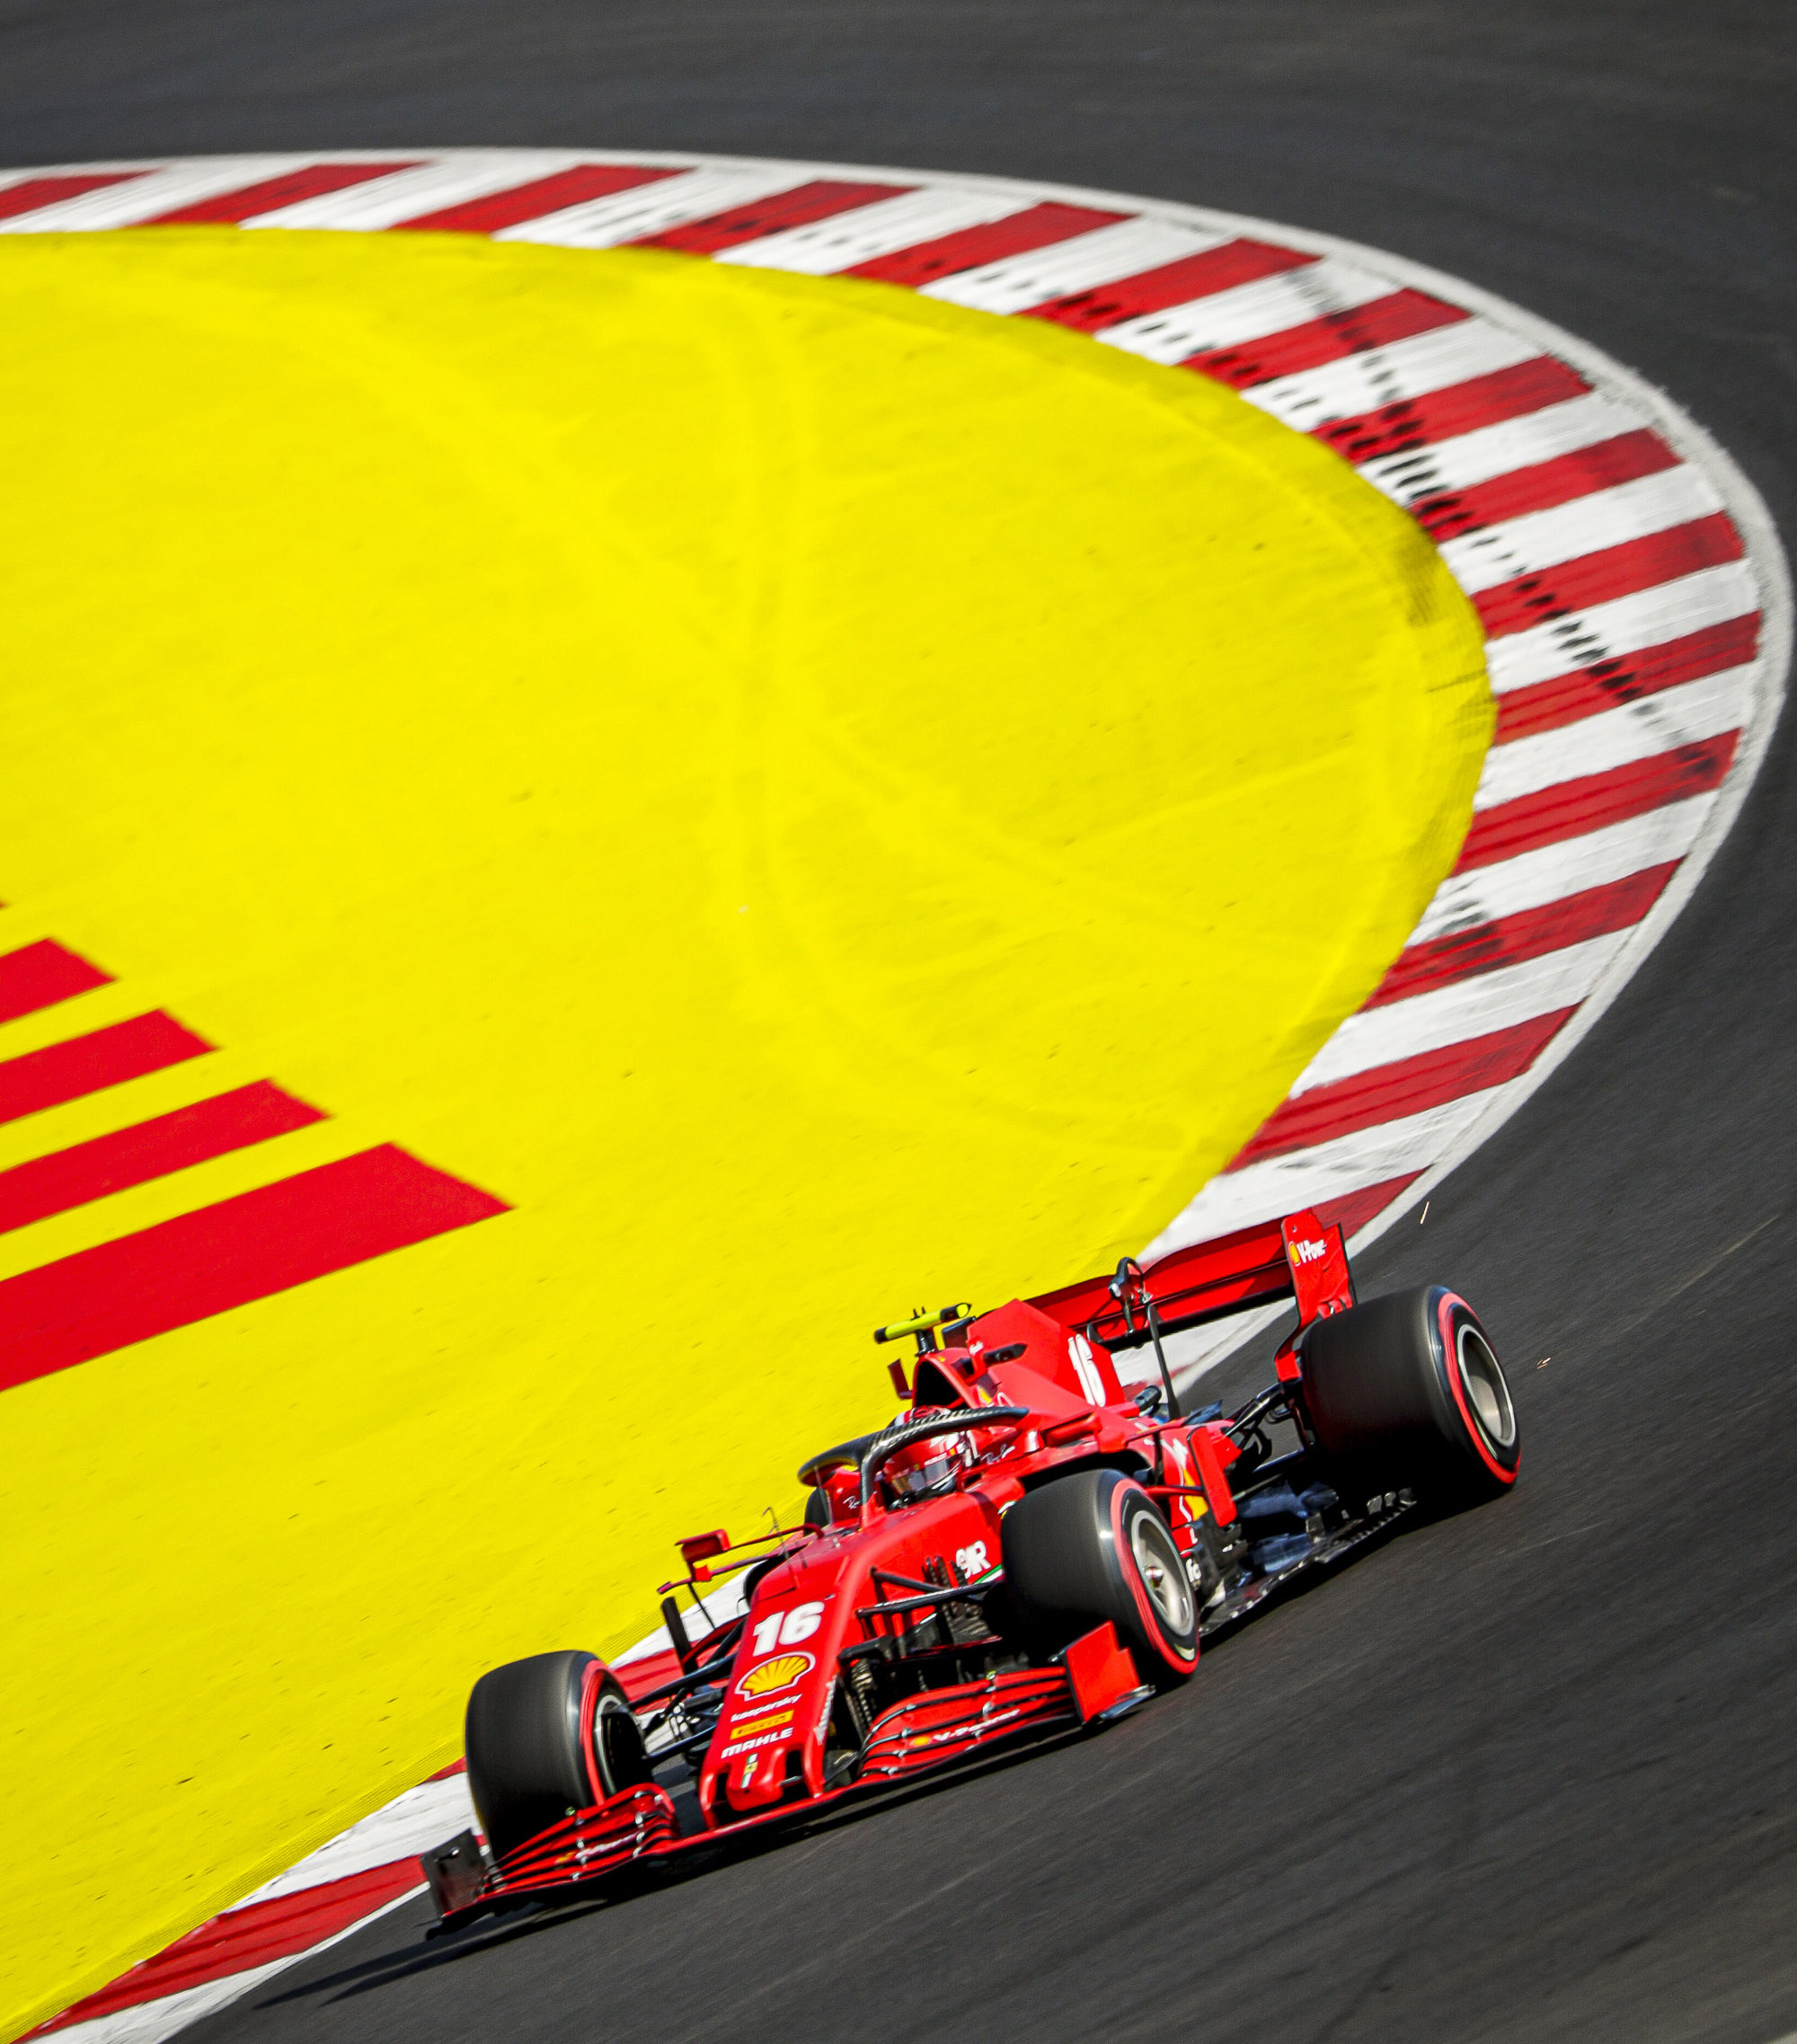 Charles-Leclercs-Ferrari-on-track-at-Portimao-during-qualifying-for-the-2020-Portuguese-Grand-Prix